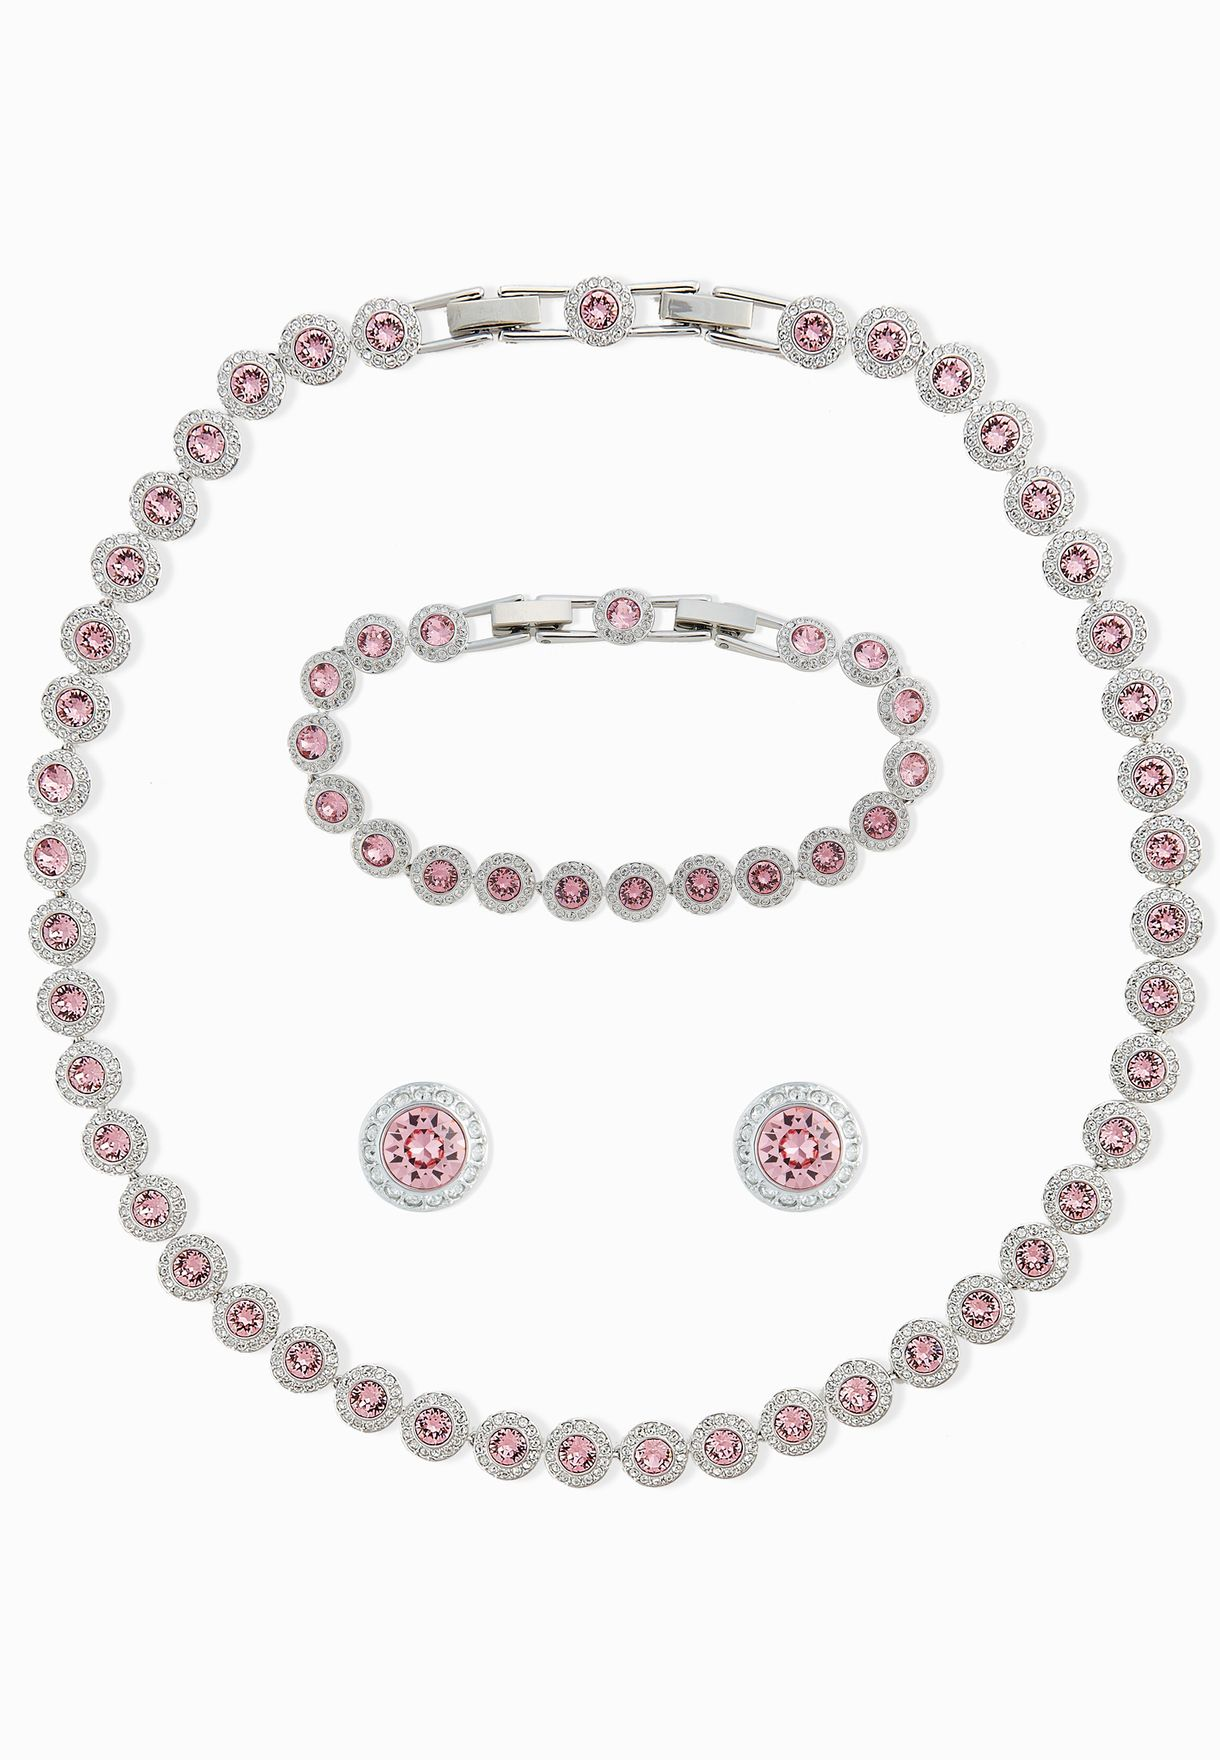 4dd70b04c Shop Swarovski silver Angelic All Around Necklace+Earrings Set ...